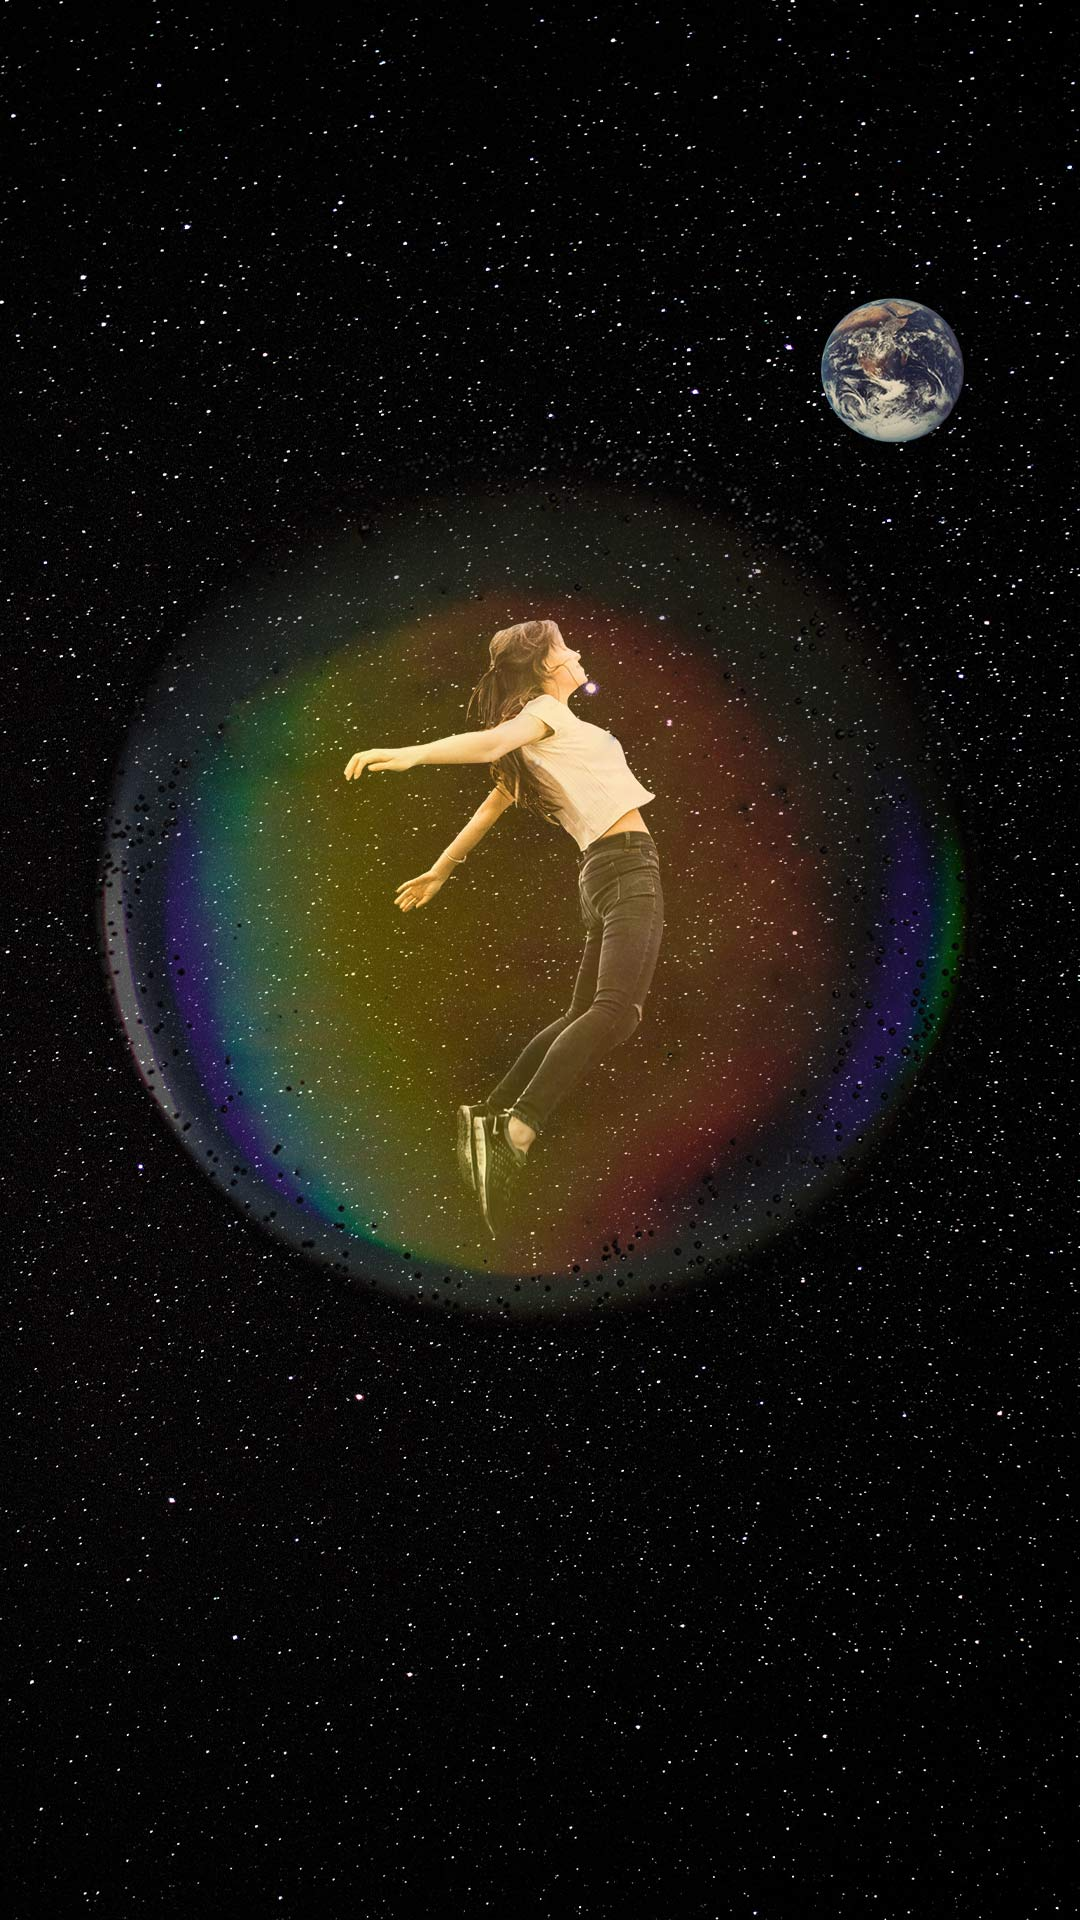 A woman floating inside a bubble in space looking at Earth.